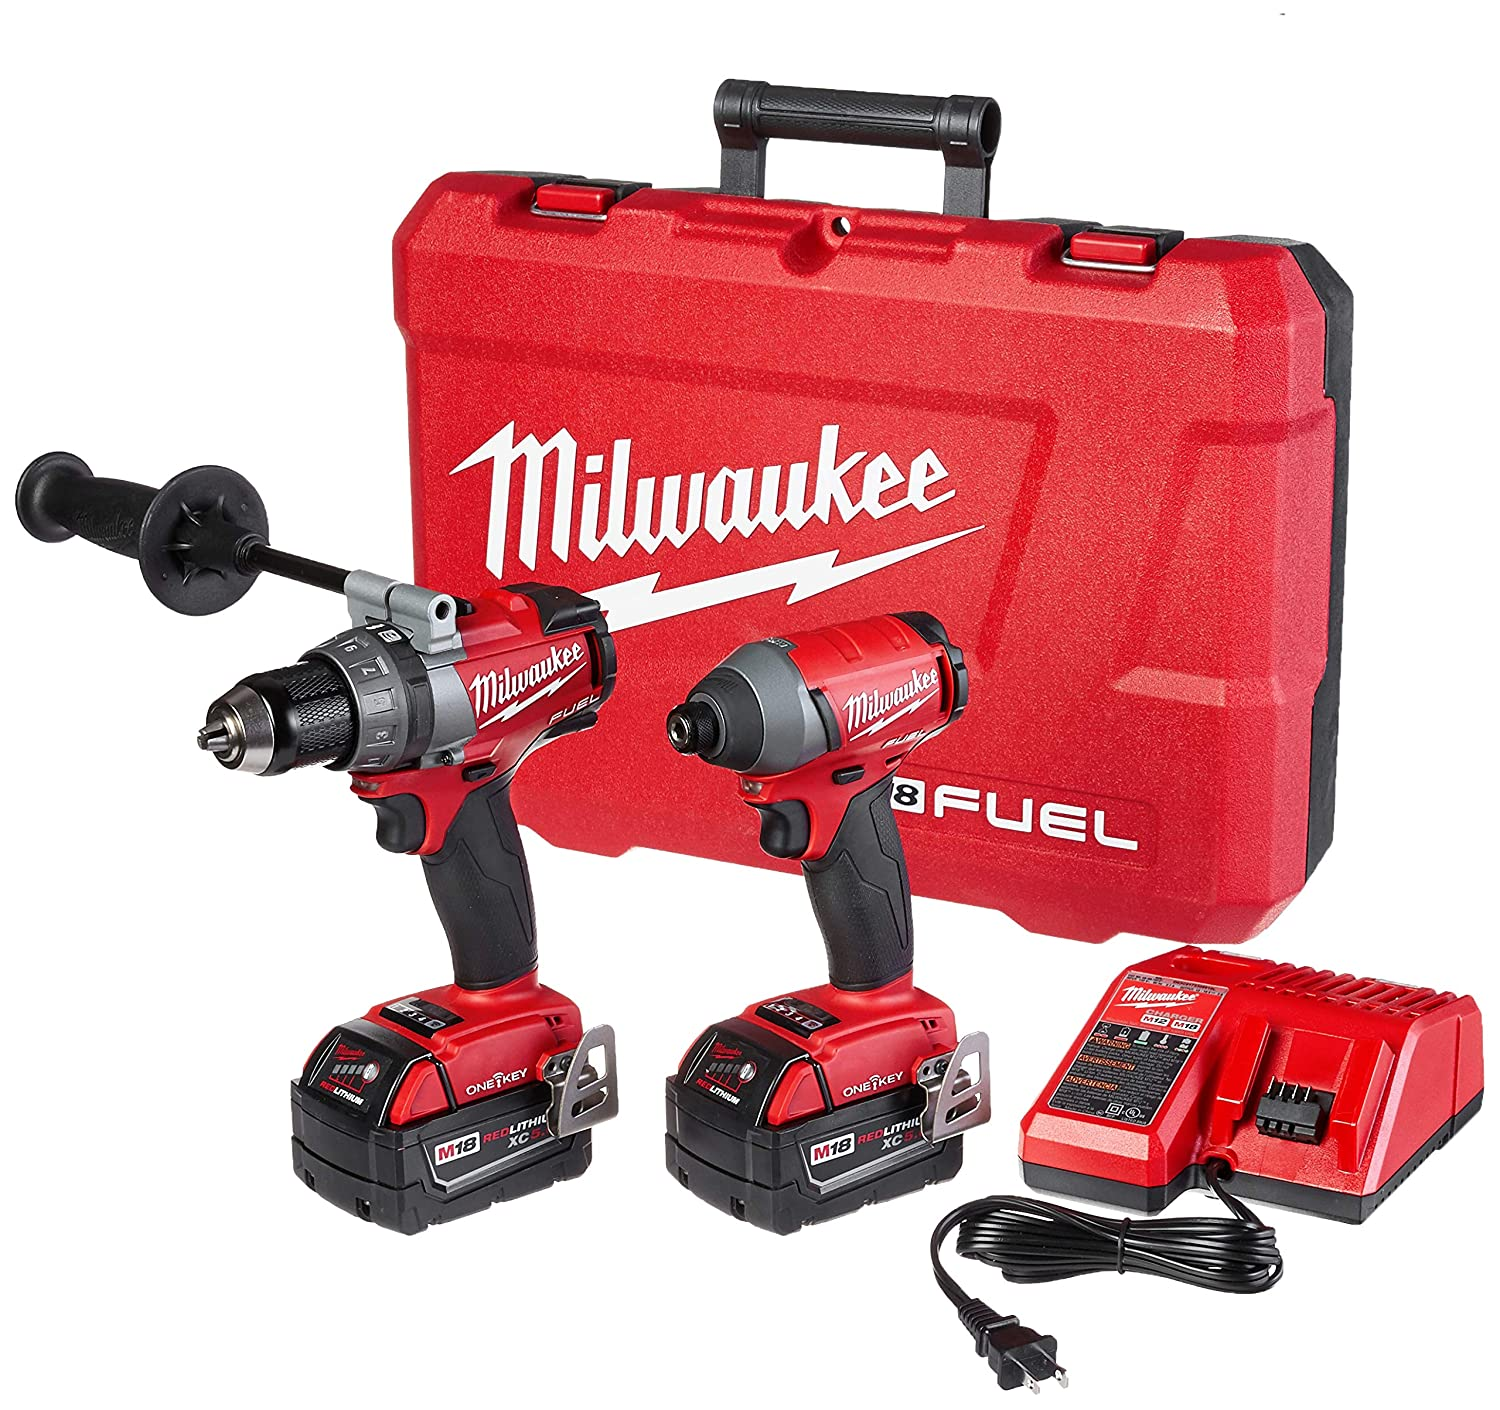 Milwaukee 2796-22 M18 FUEL ONE-KEY 18-Volt Lithium-Ion Brushless Cordless Hammer Drill Impact Driver Combo Kit